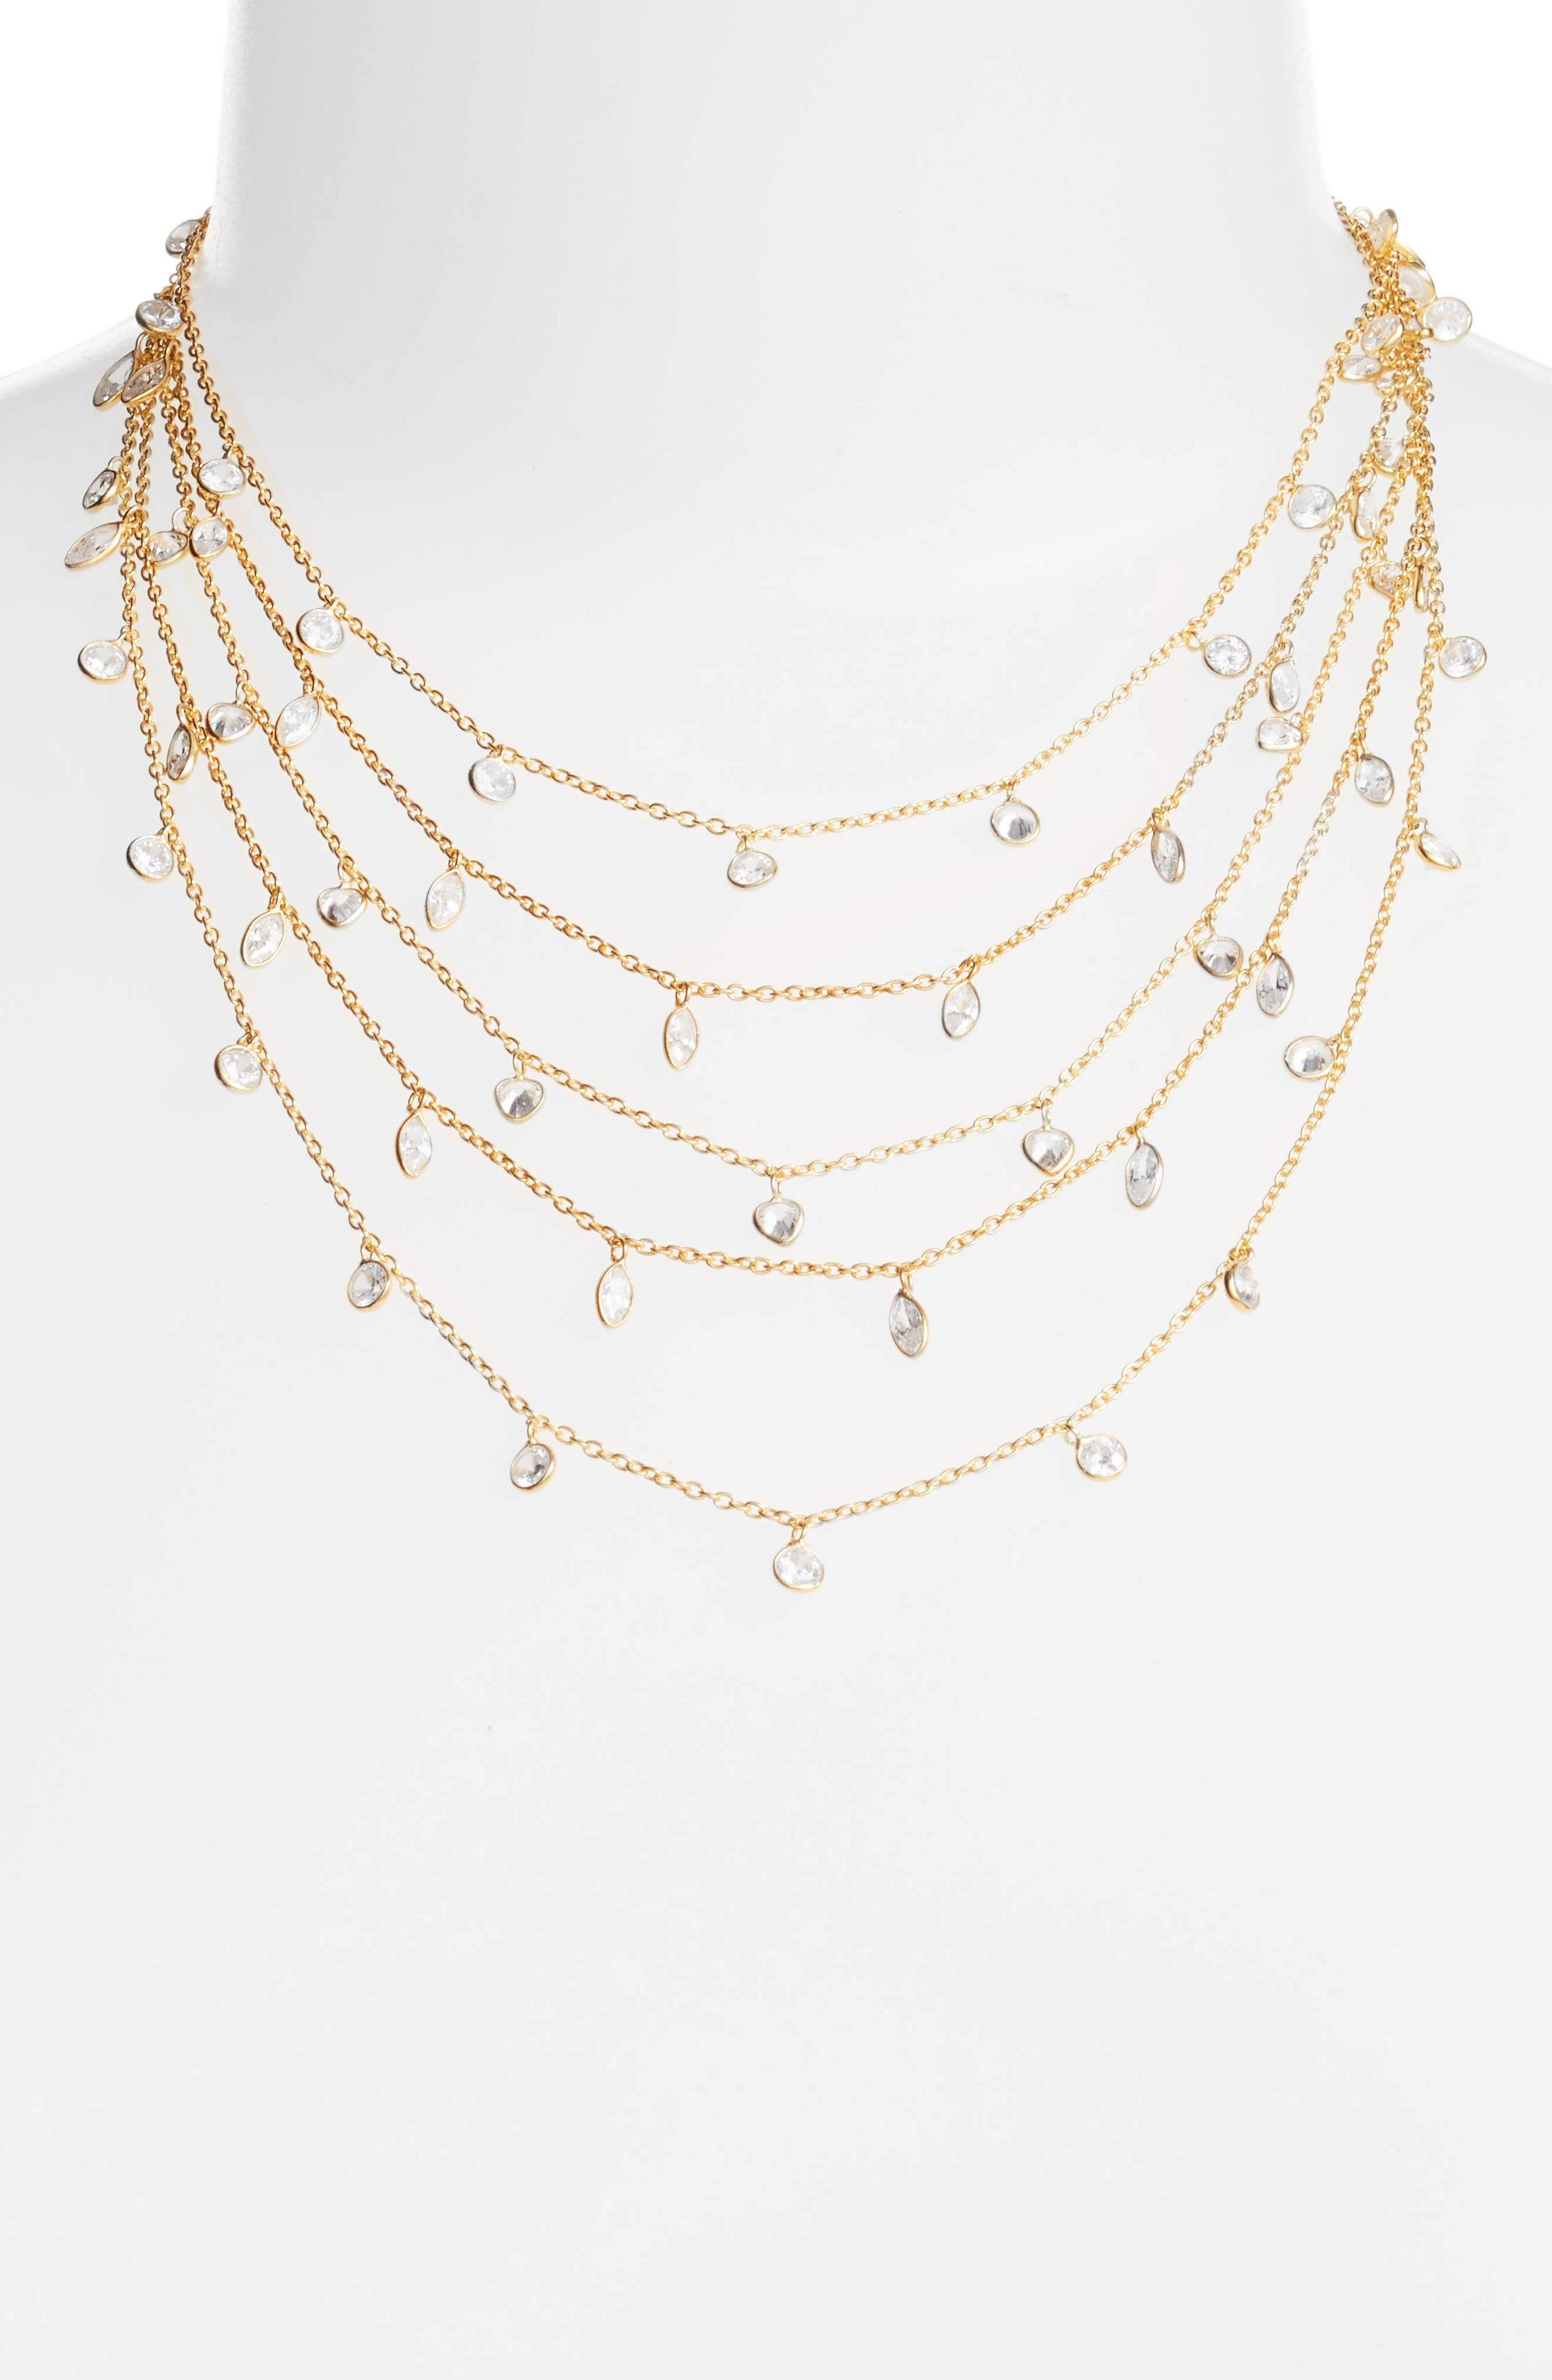 Multistrand Cubic Zirconia Necklace,                         Main,                         color, Gold